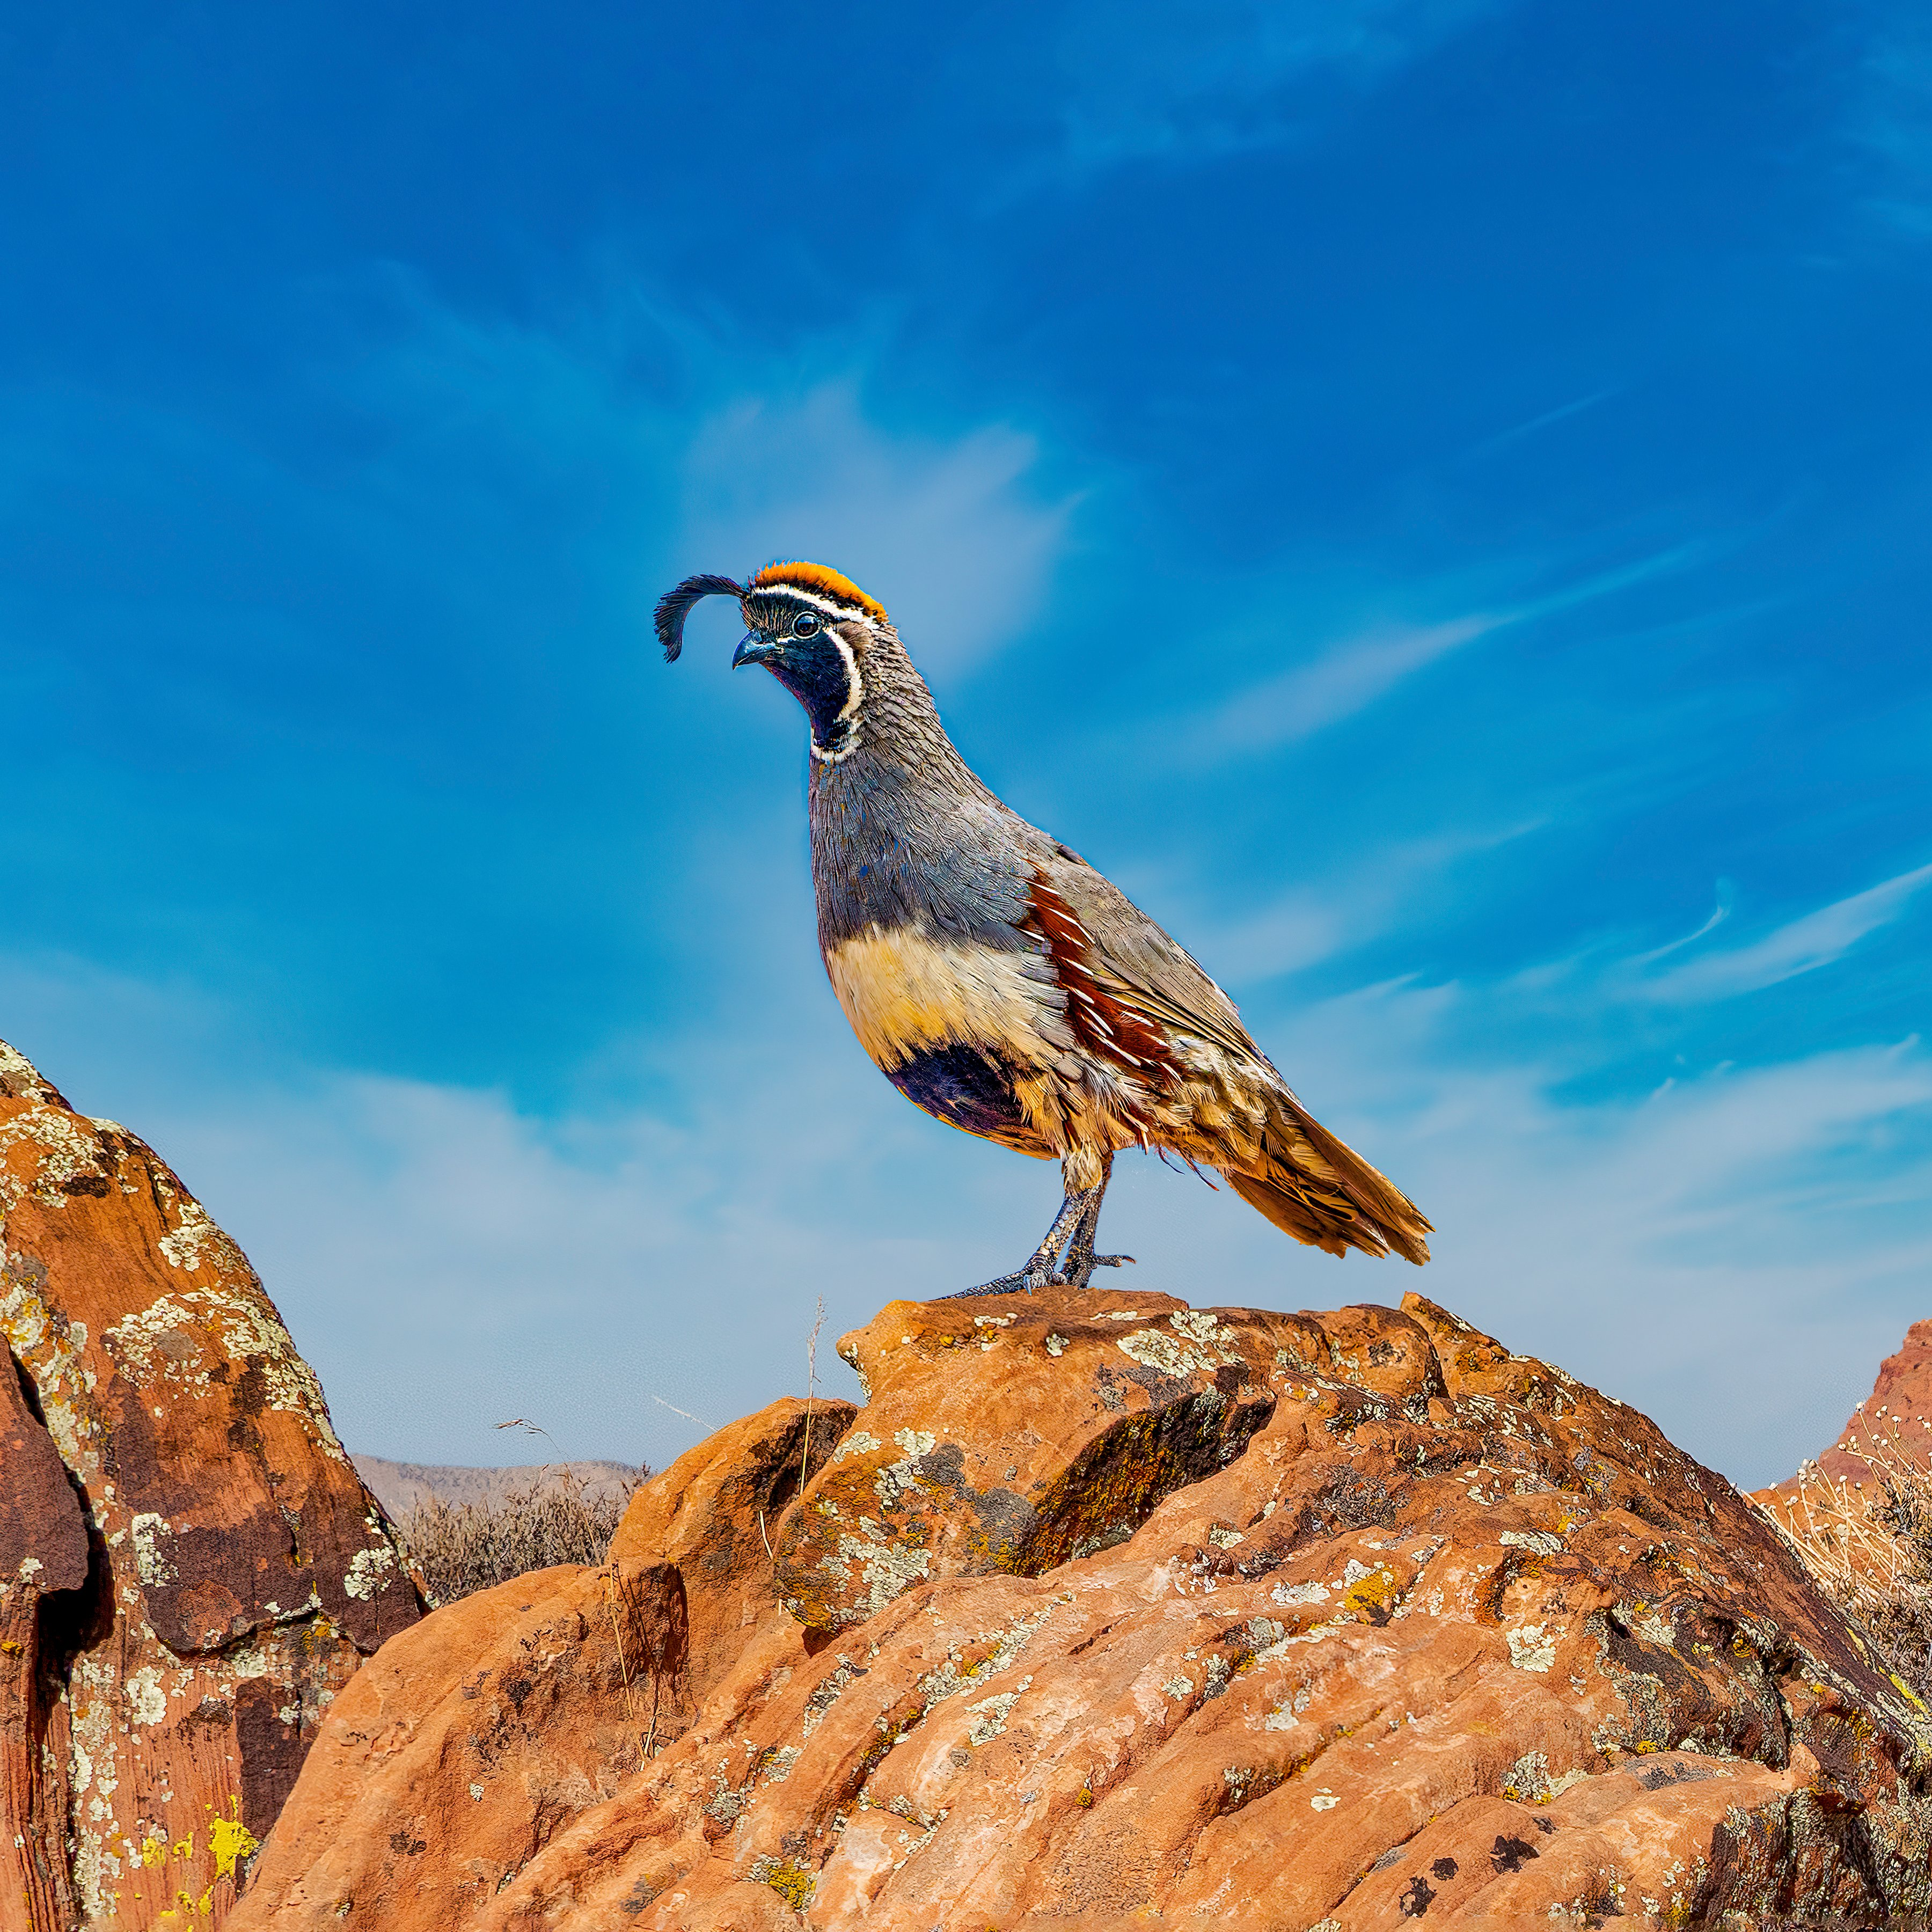 GAMBEL'S QUAIL - This resident of the Sonoran Desert just may be the most skittish bird there is. It scatters at most any movement or sound making it very difficult to get close enough for a good photo. I got a lucky shot while traveling in Arizona.